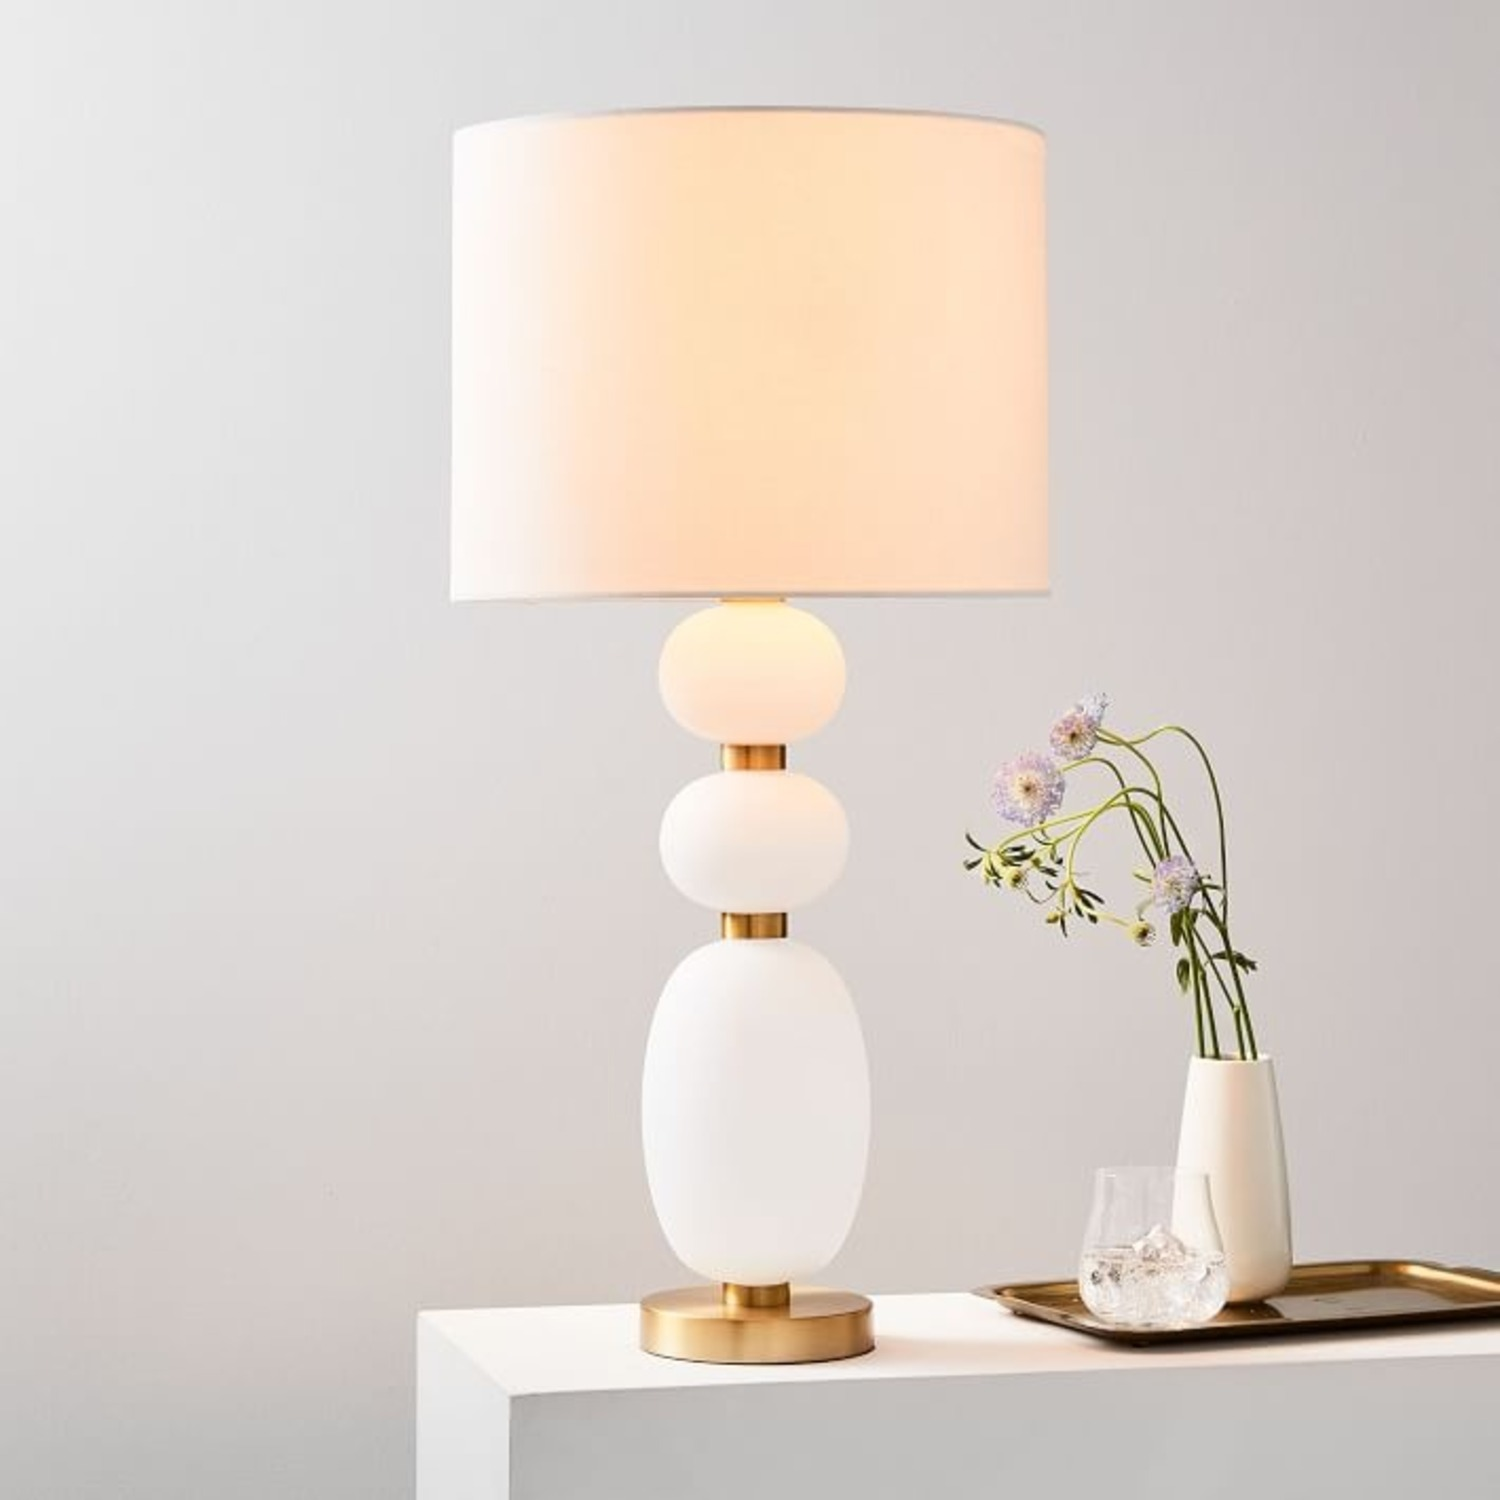 West Elm Lilah Table Lamps - image-1